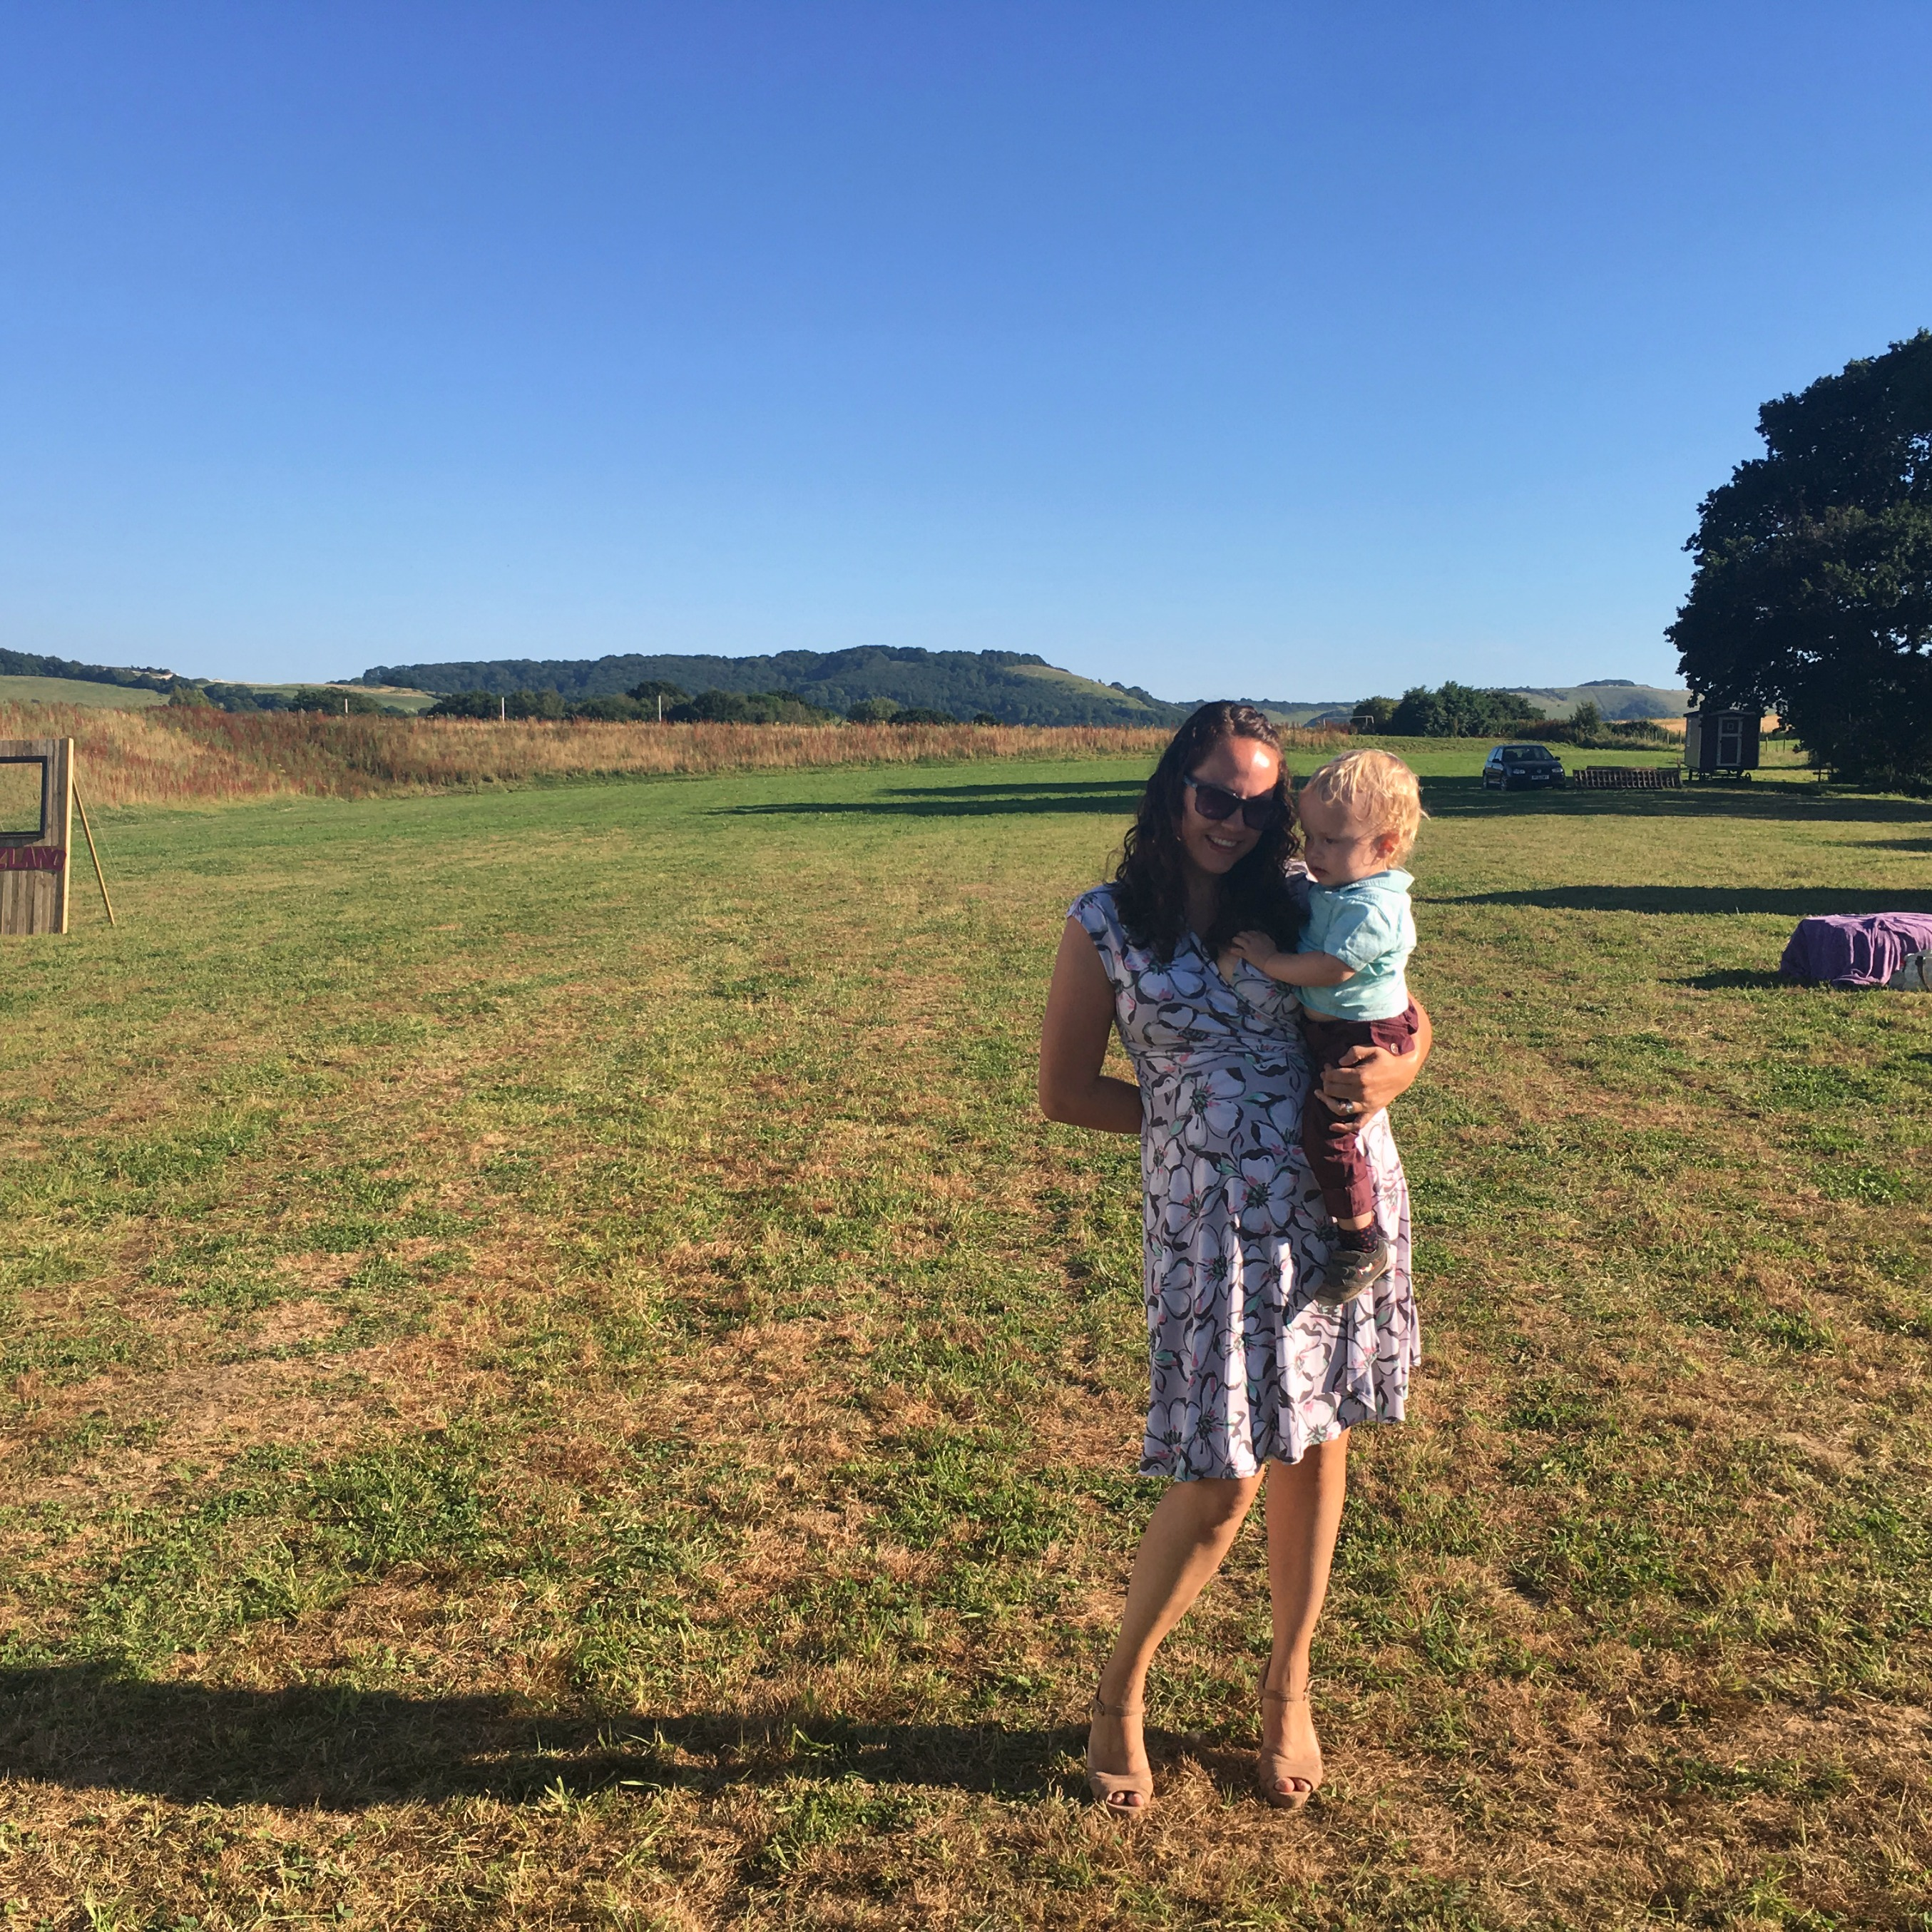 mum and son in a field